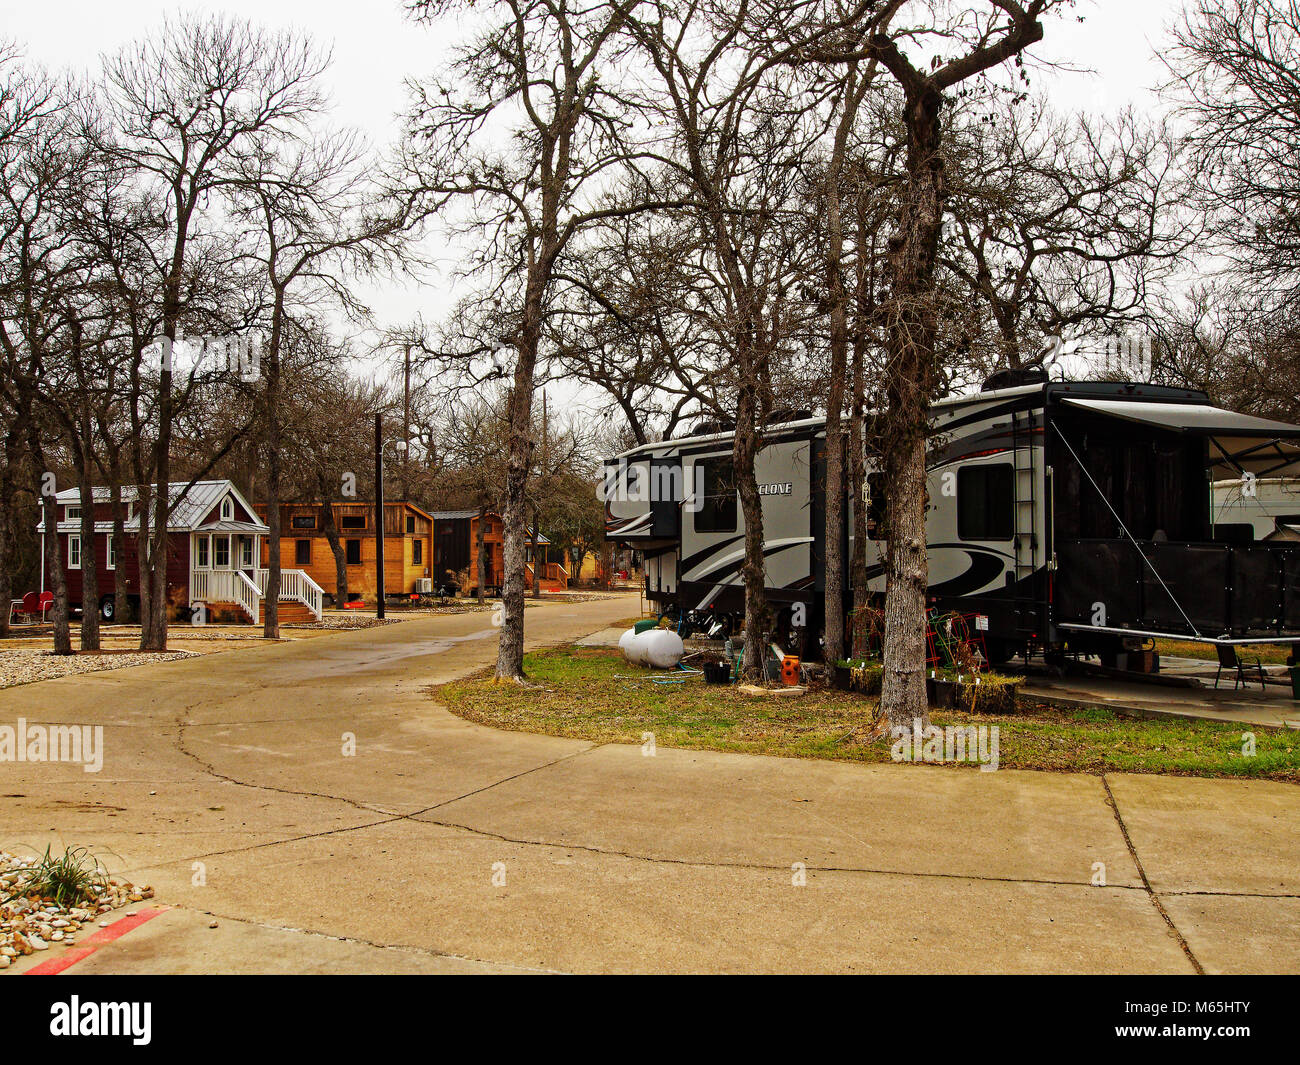 tiny house hotel. Original Tiny House Hotel In Austin, Texas, Lets People Experience And Feel What It Is Like To Live A Mall Space. Located Trailer Park,